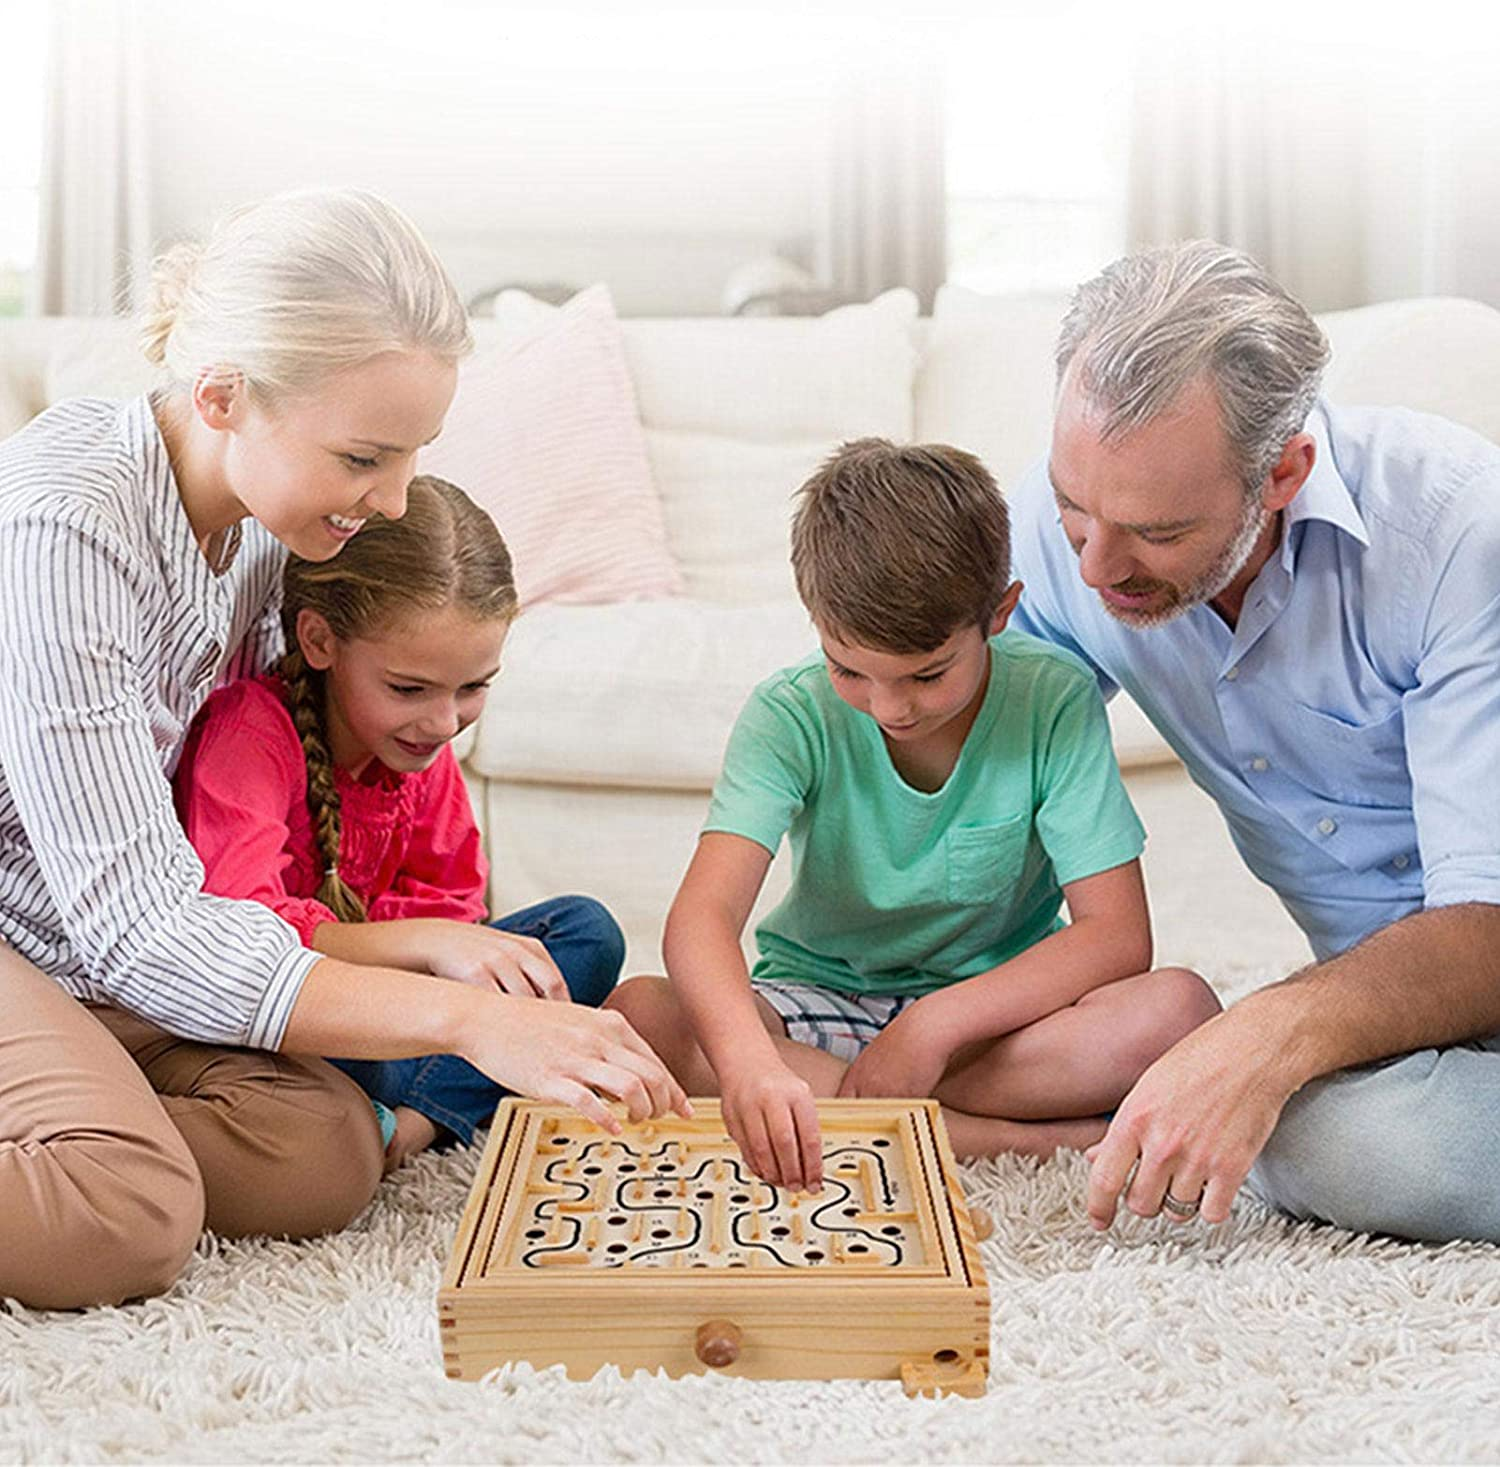 A Classic Favorite Game Gift for Kids Boys Girls Age 6+ Wooden Labyrinth Toy With 60 Holes Puzzle Game for Family Activity Premium Maze Game Labyrinth Board Game